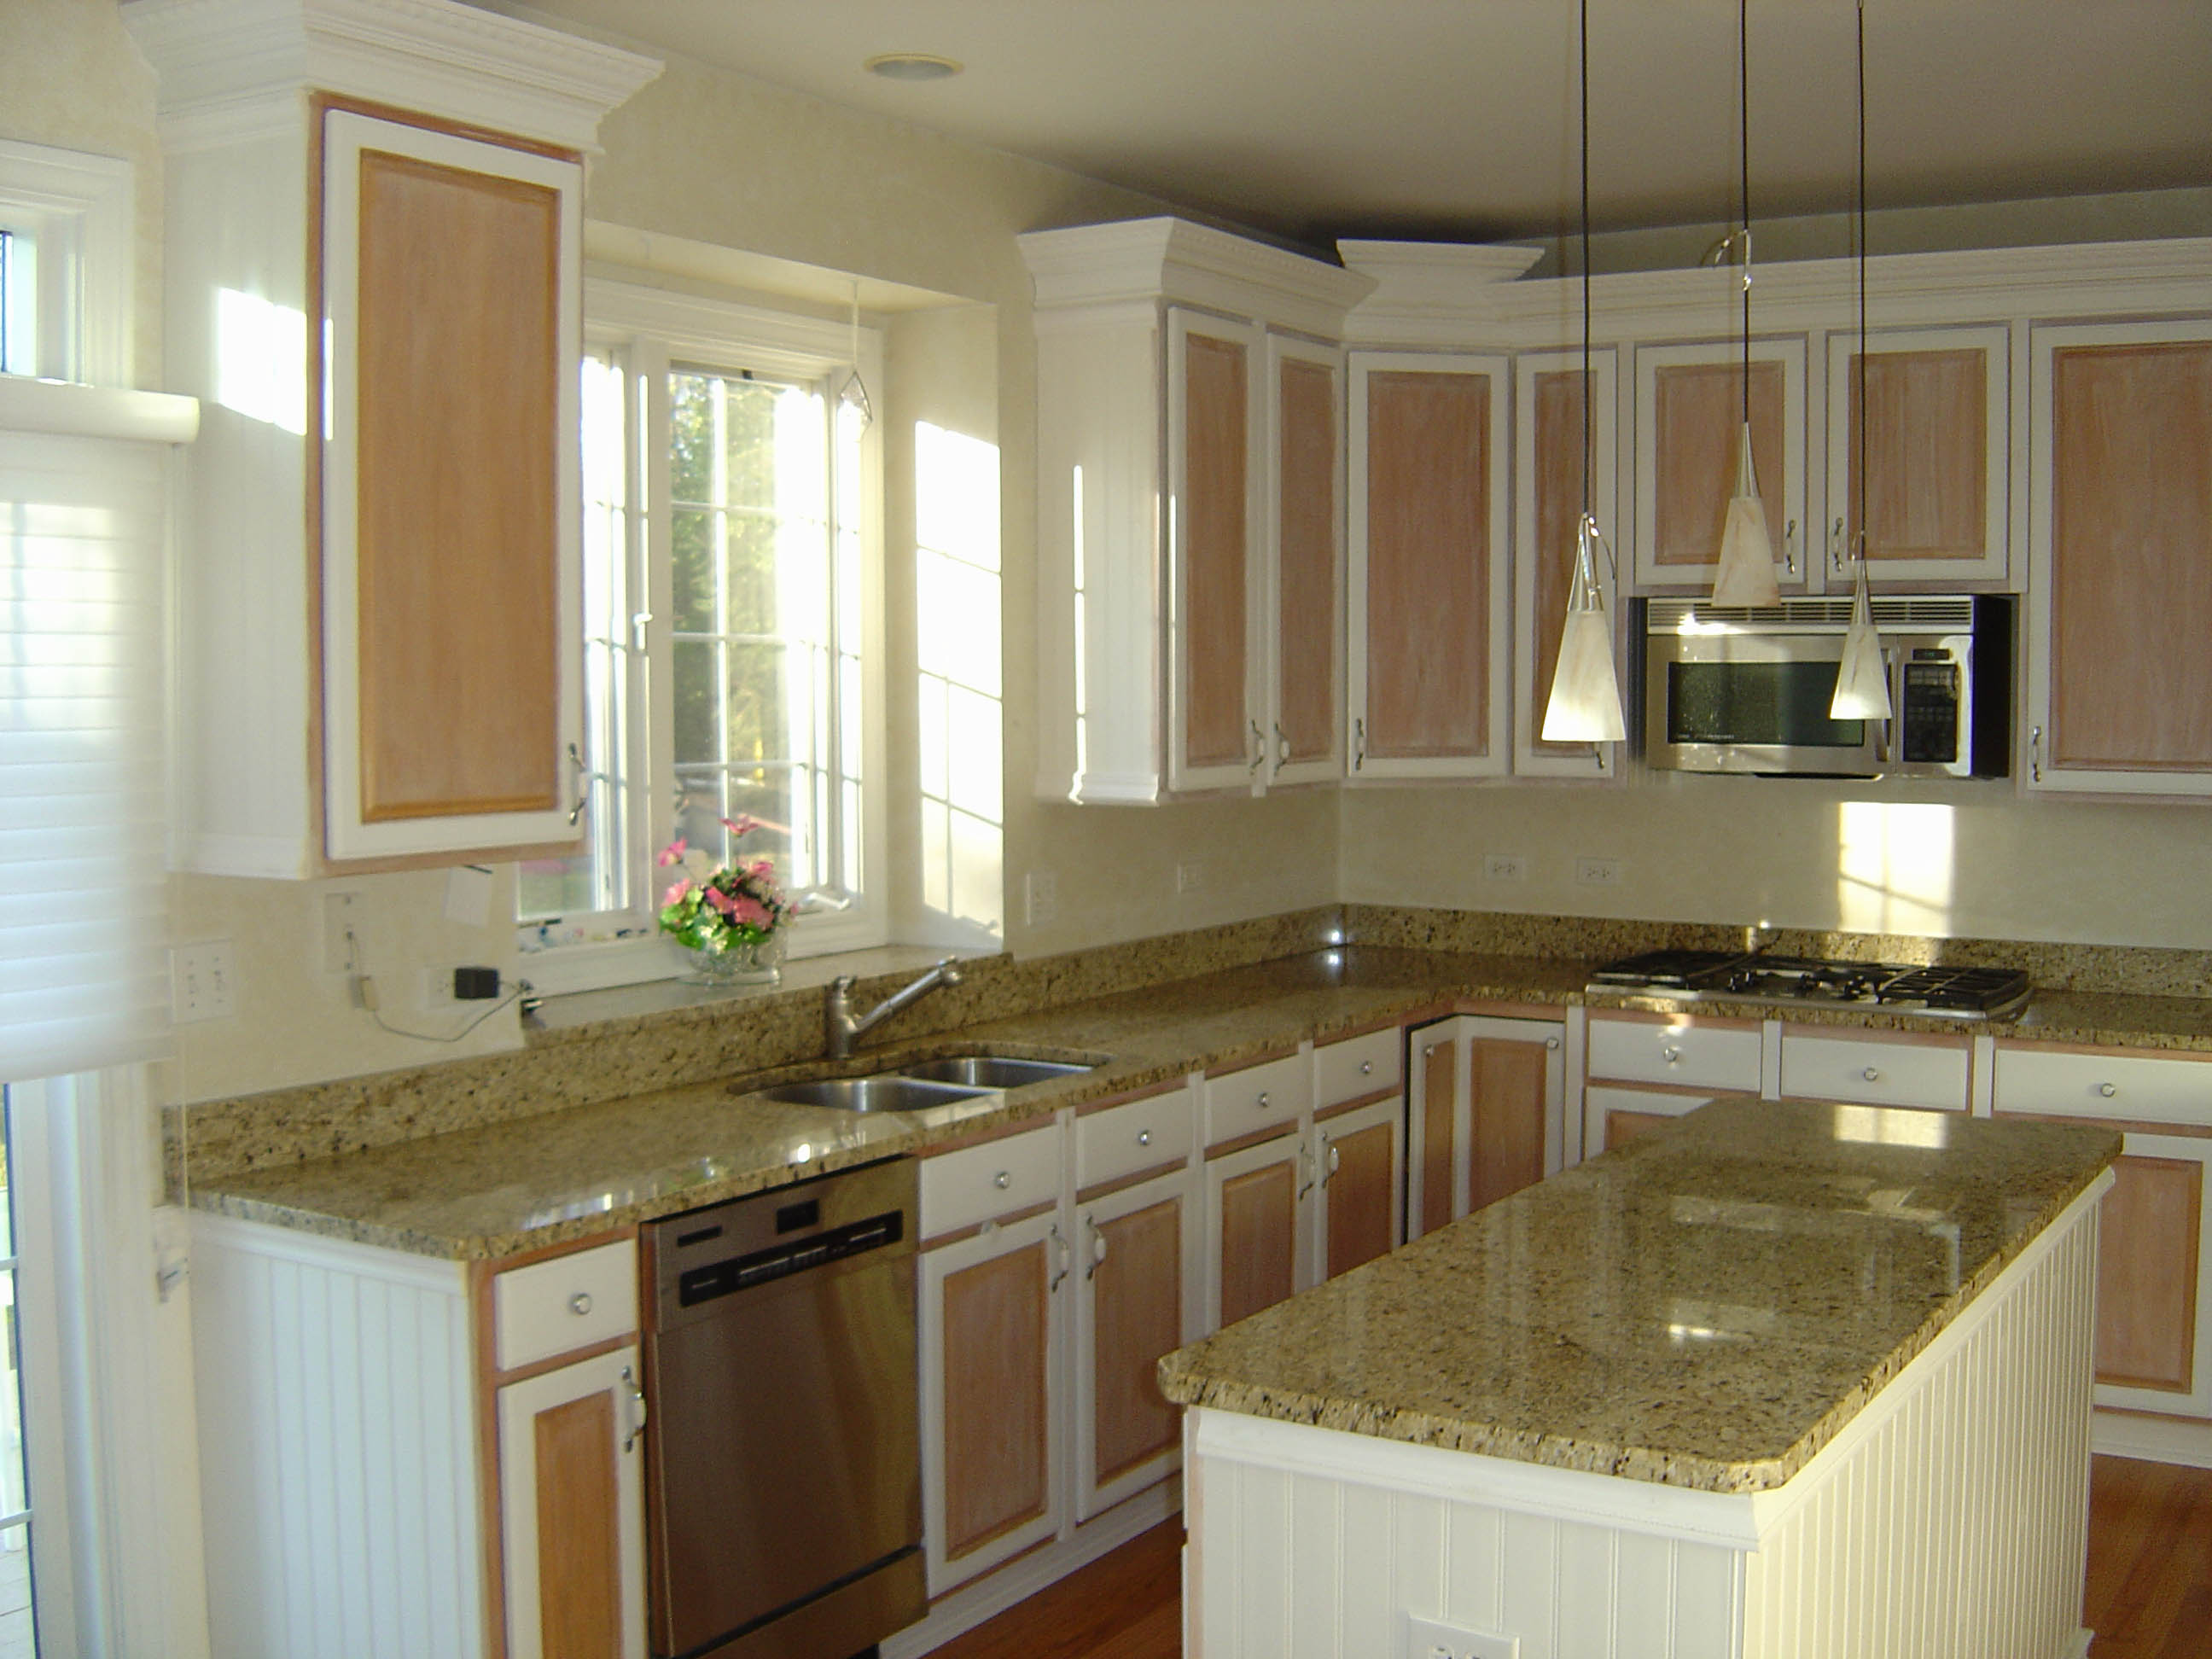 brevard face new counter refacing cabinet it county viera replace cost just tops countertop florida